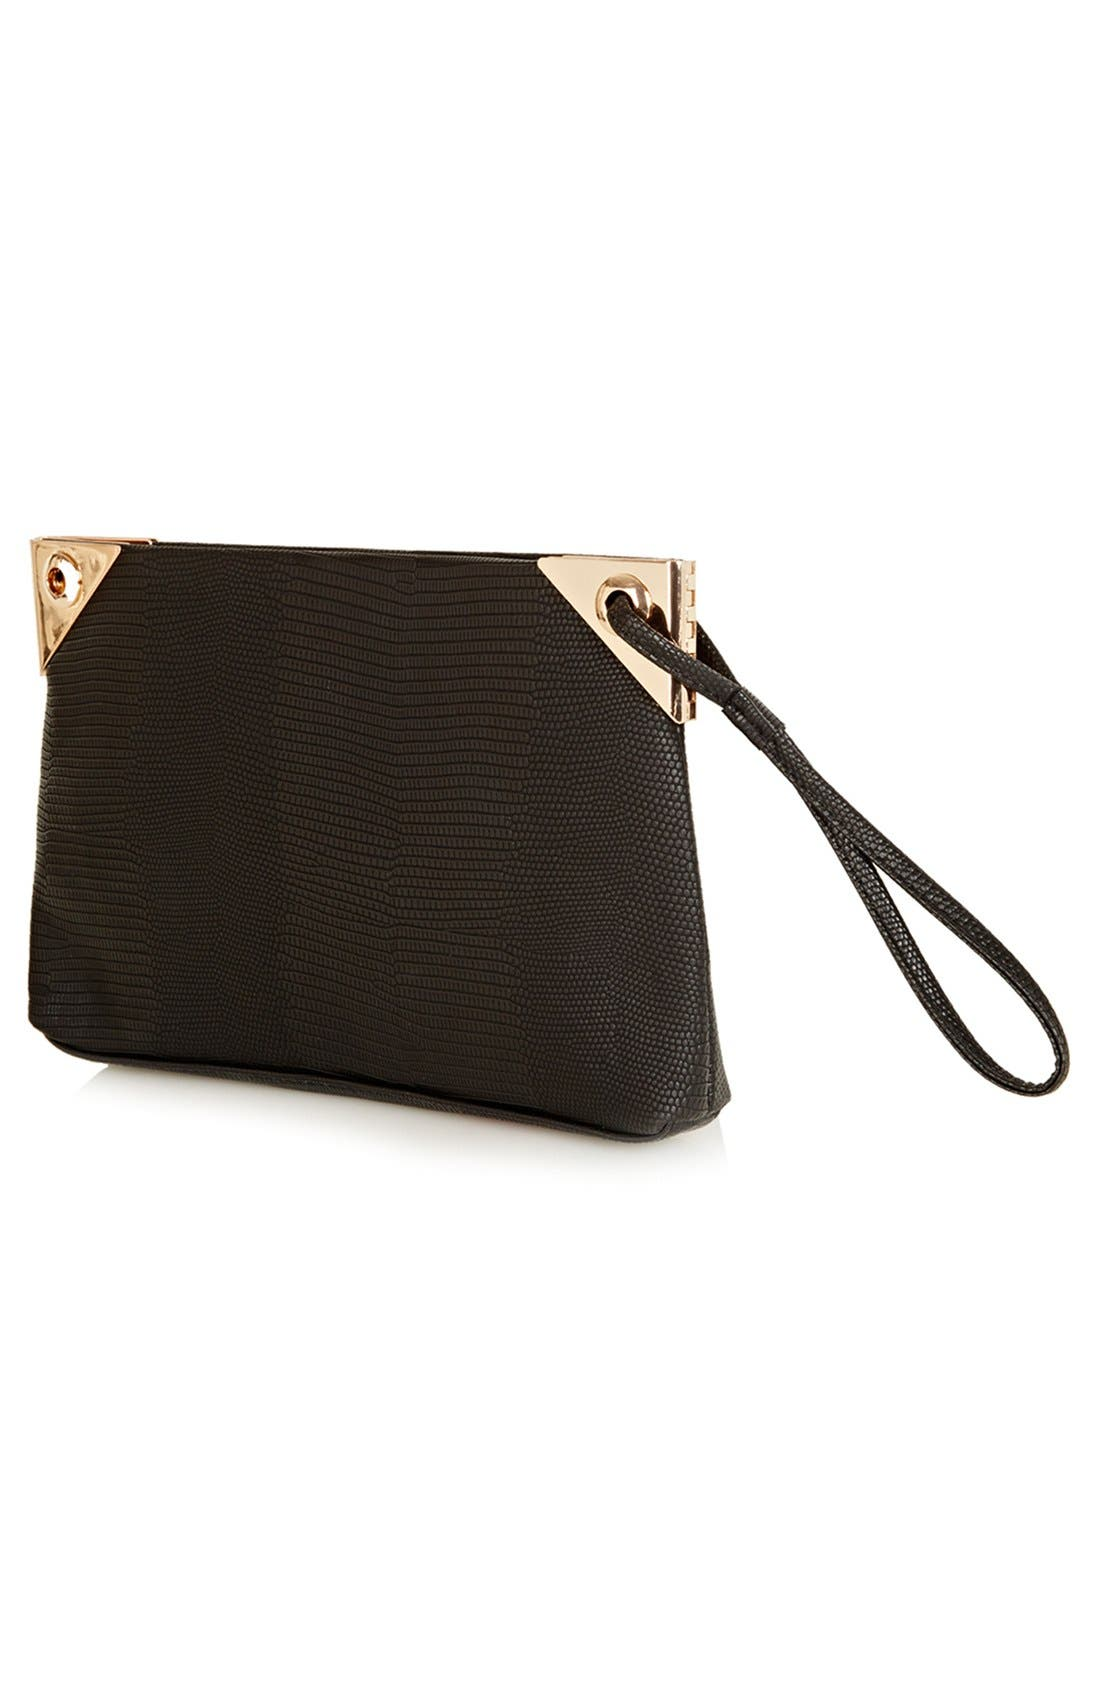 Alternate Image 3  - Topshop 'Hinge' Lizard Embossed Clutch